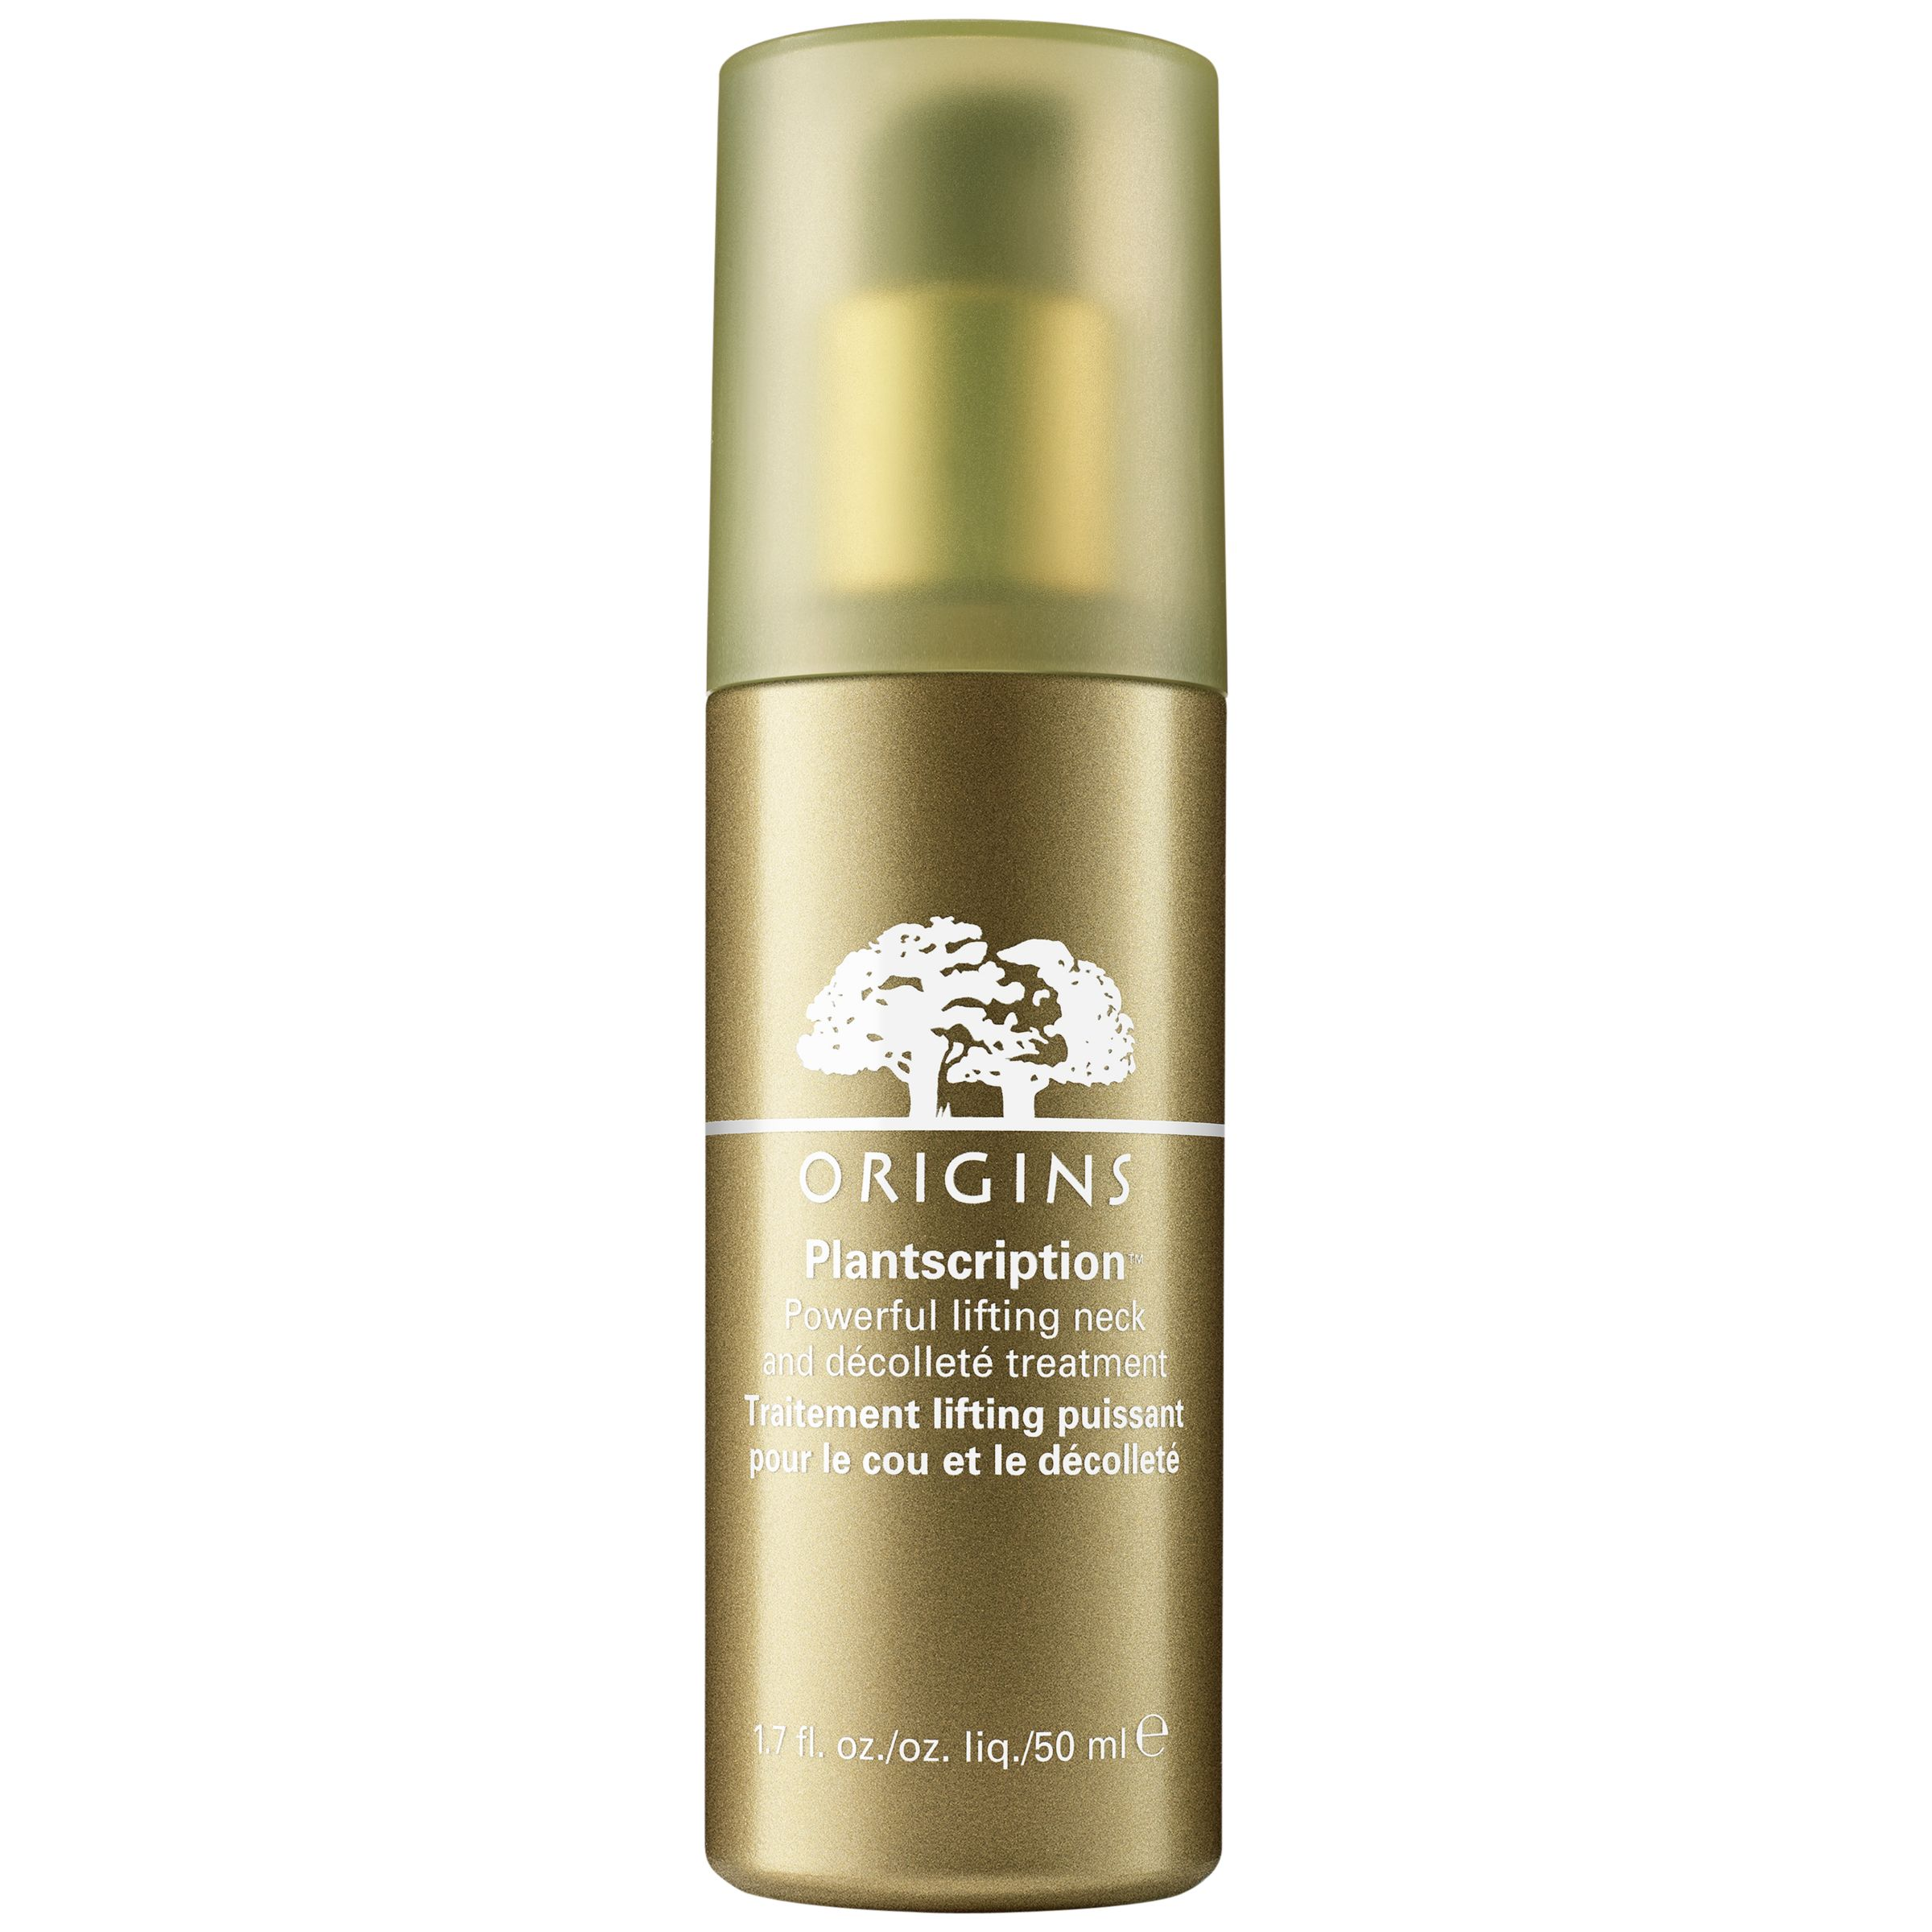 Origins Origins Plantscription Neck & Decollete Treatment, 50ml